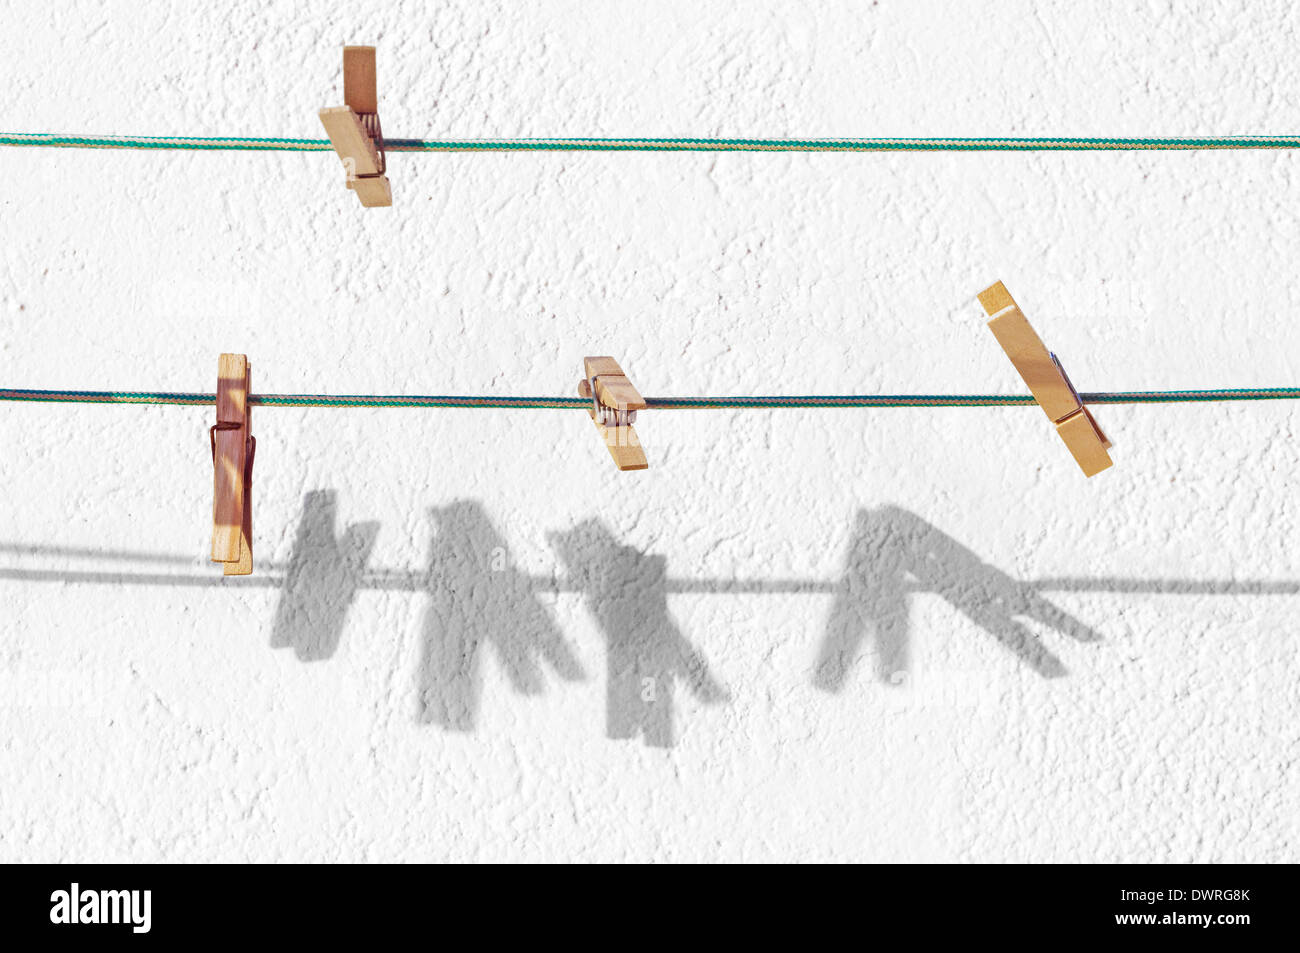 peg for clothes hanging on rope - Stock Image